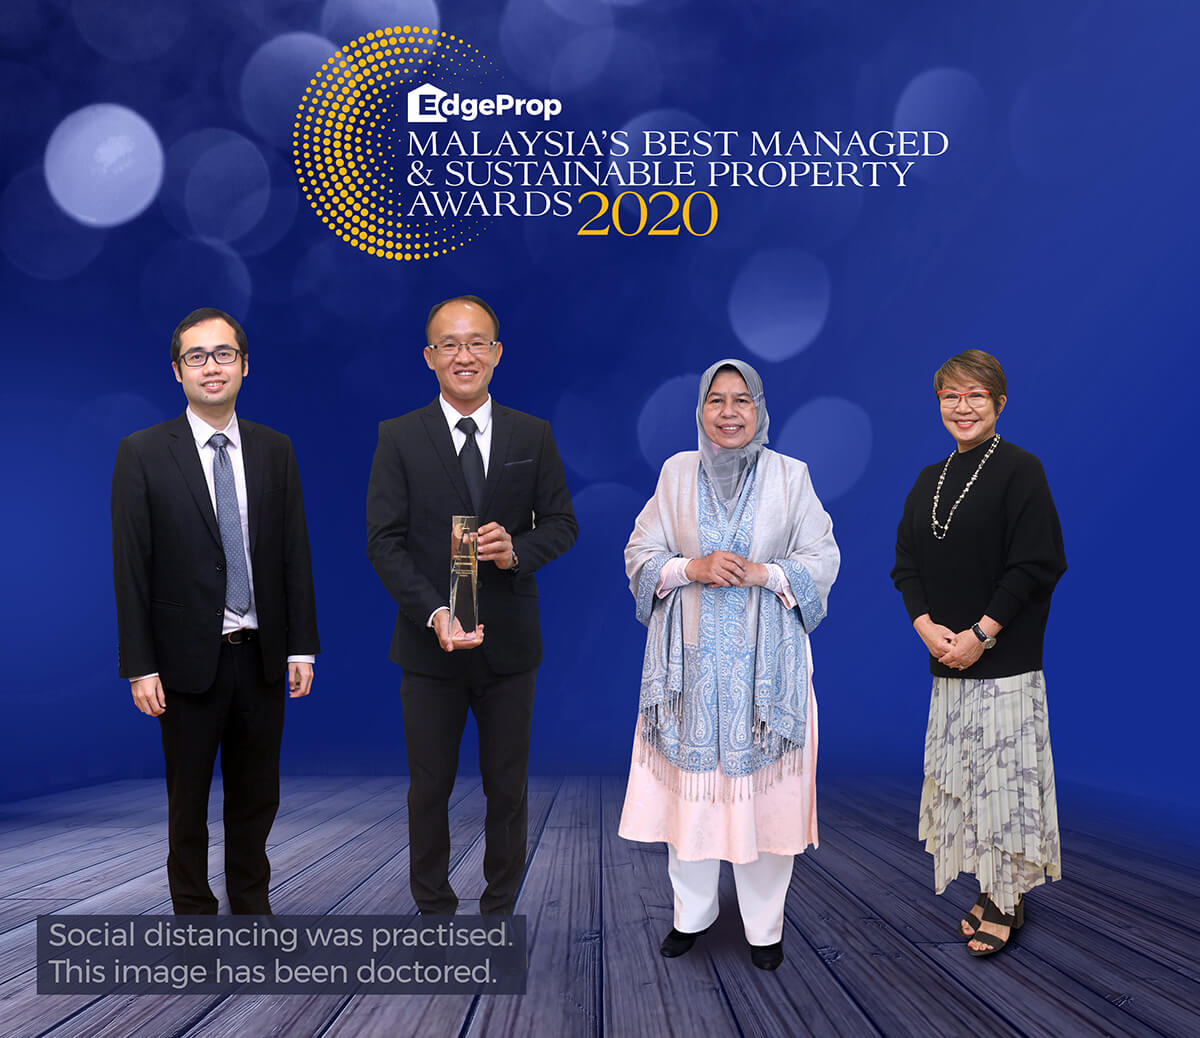 From left: EdgeProp Malaysia director of business and product development Alvin Ong, Tay, Housing and Local Government Minister Zuraida Kamaruddin, EdgeProp Malaysia editor-in-chief and managing director Au Foong Yee.